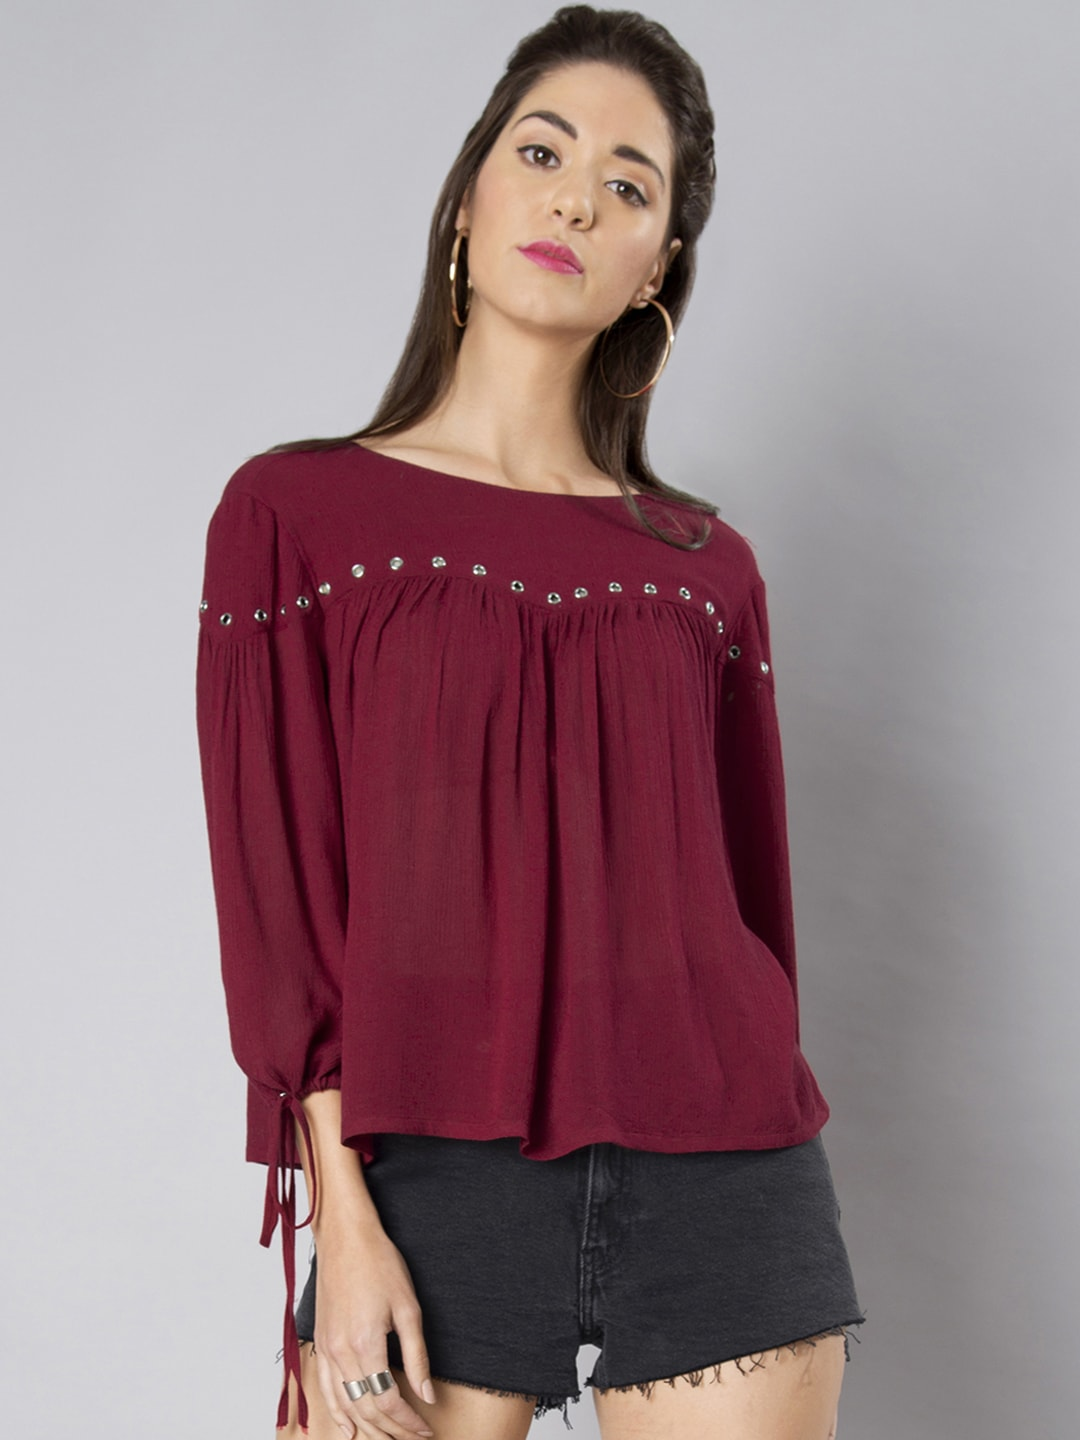 66085086c4bcf FabAlley Top - Buy FabAlley Tops Online in India